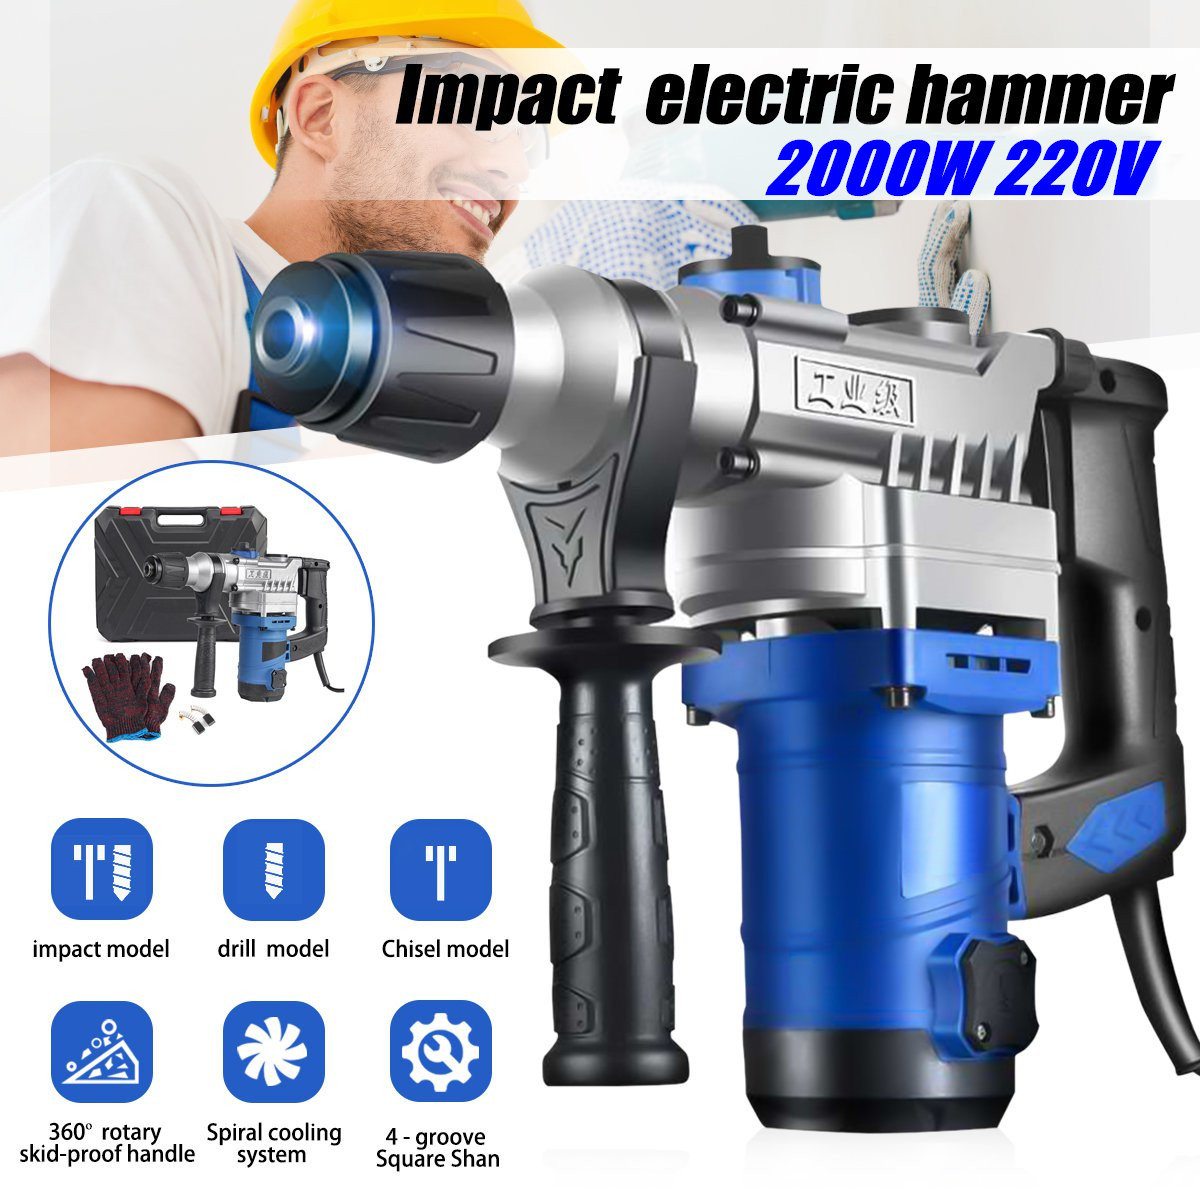 2000W Cordless Rotary Impact Hammer Mini Electric Hammer Drill Screwdriver Concrete Breaker 220V with Portable Tool Storage Box